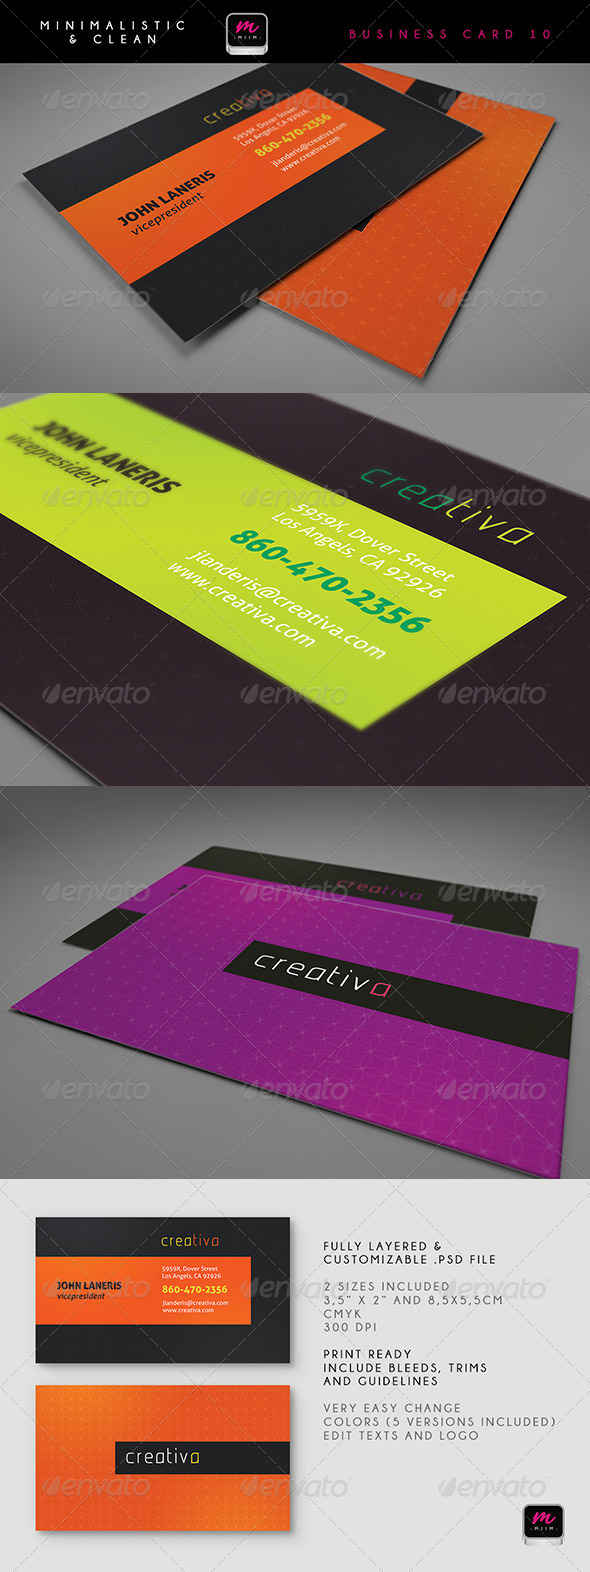 GraphicRiver Clean Business Card Template 10 5913439